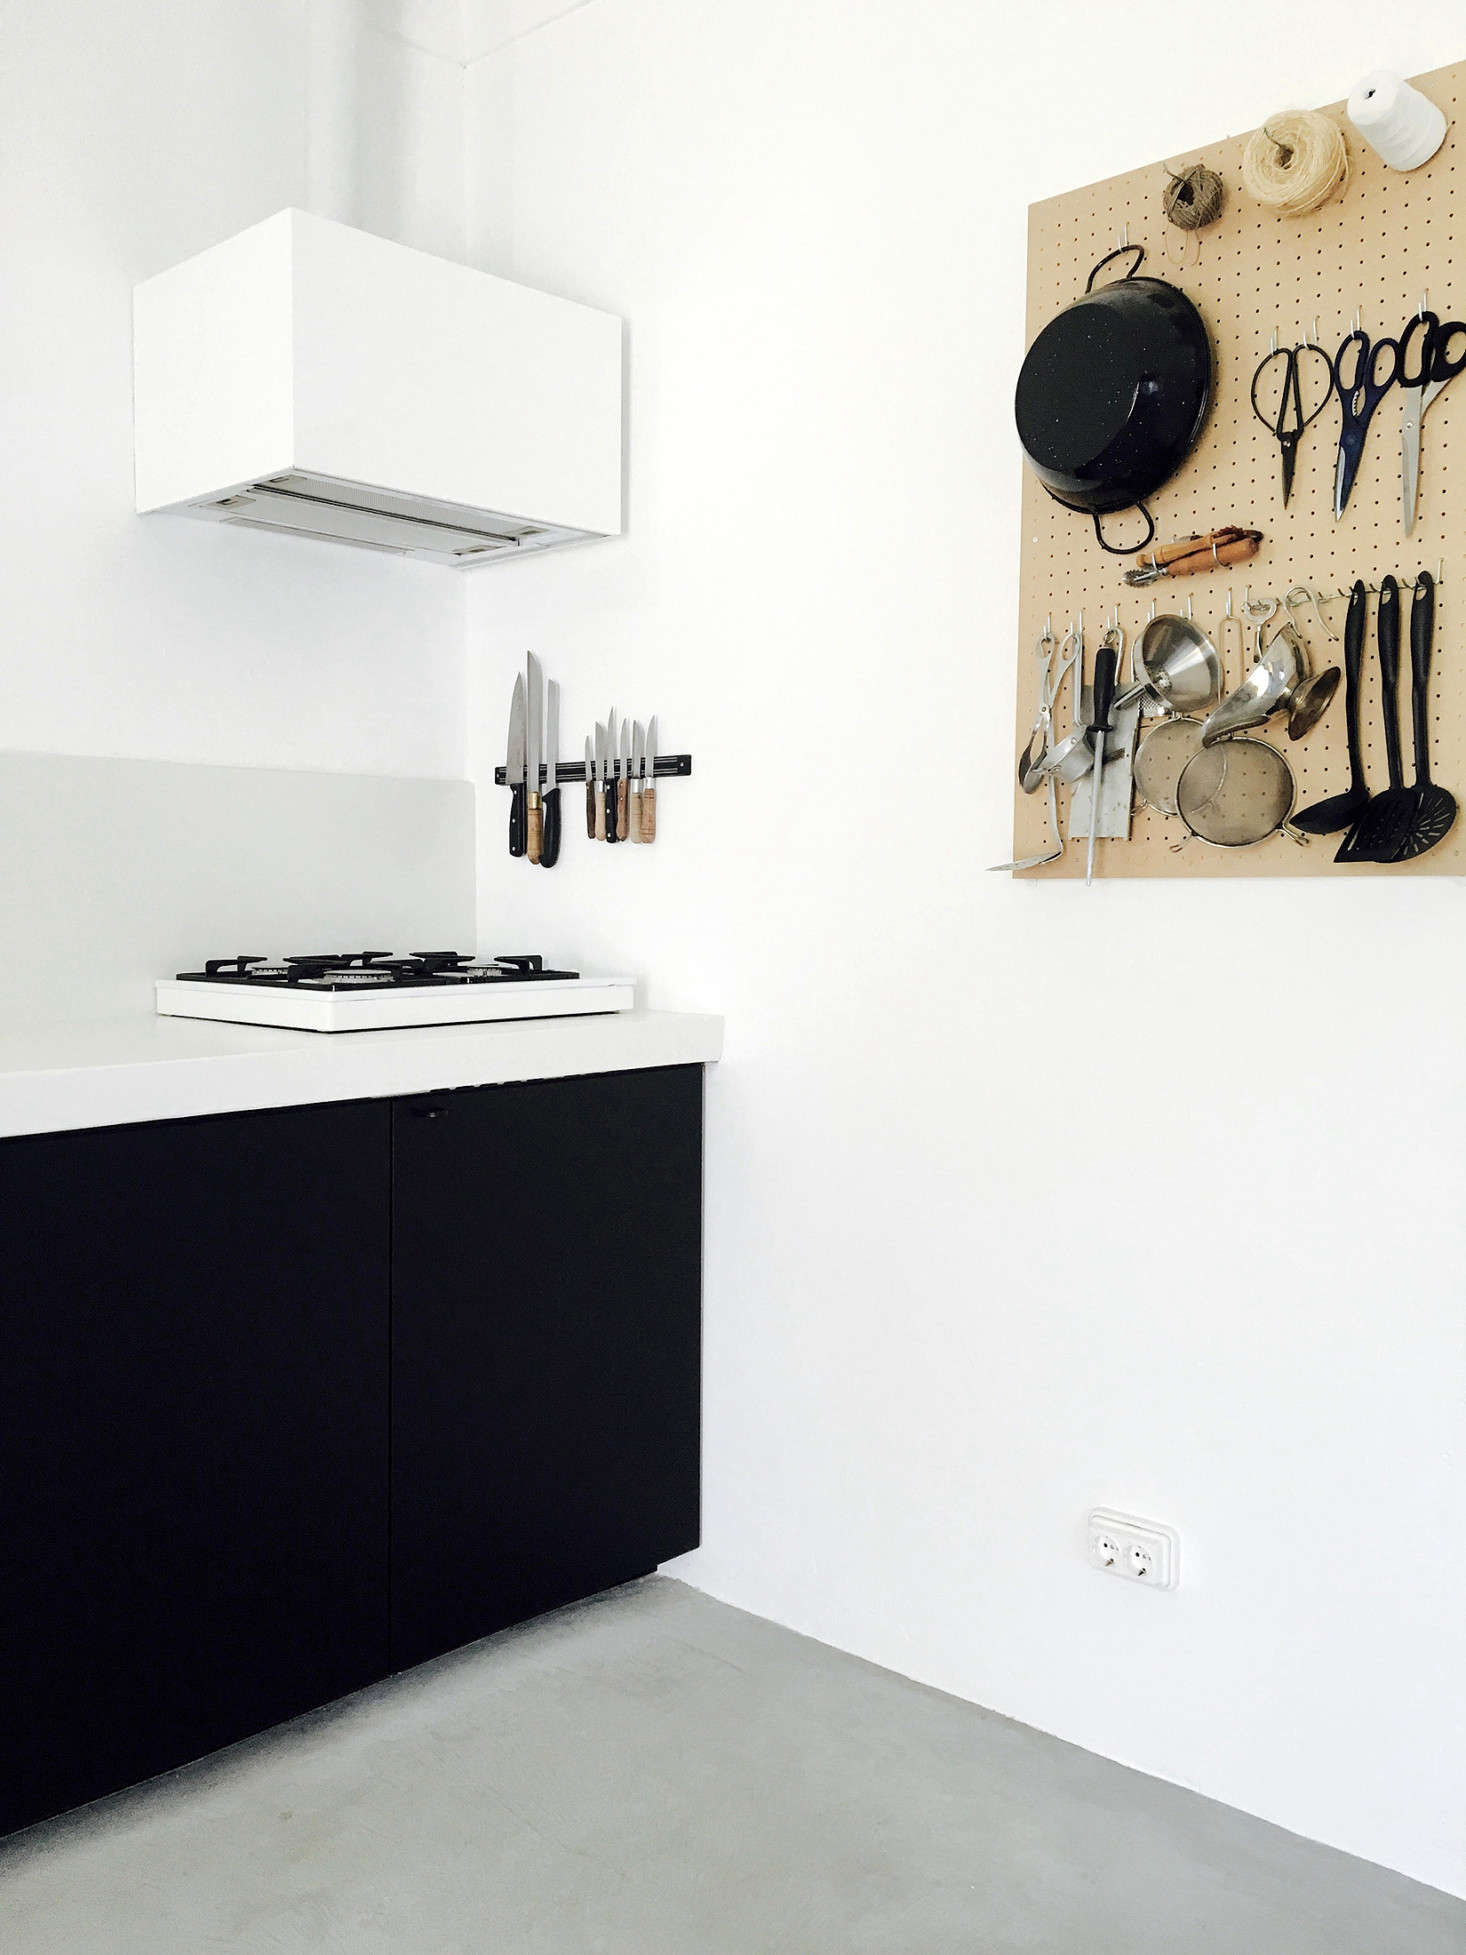 By the small gas cooktop is a well-appointed pegboard, which holds kitchen shears and even a silver pitcher.